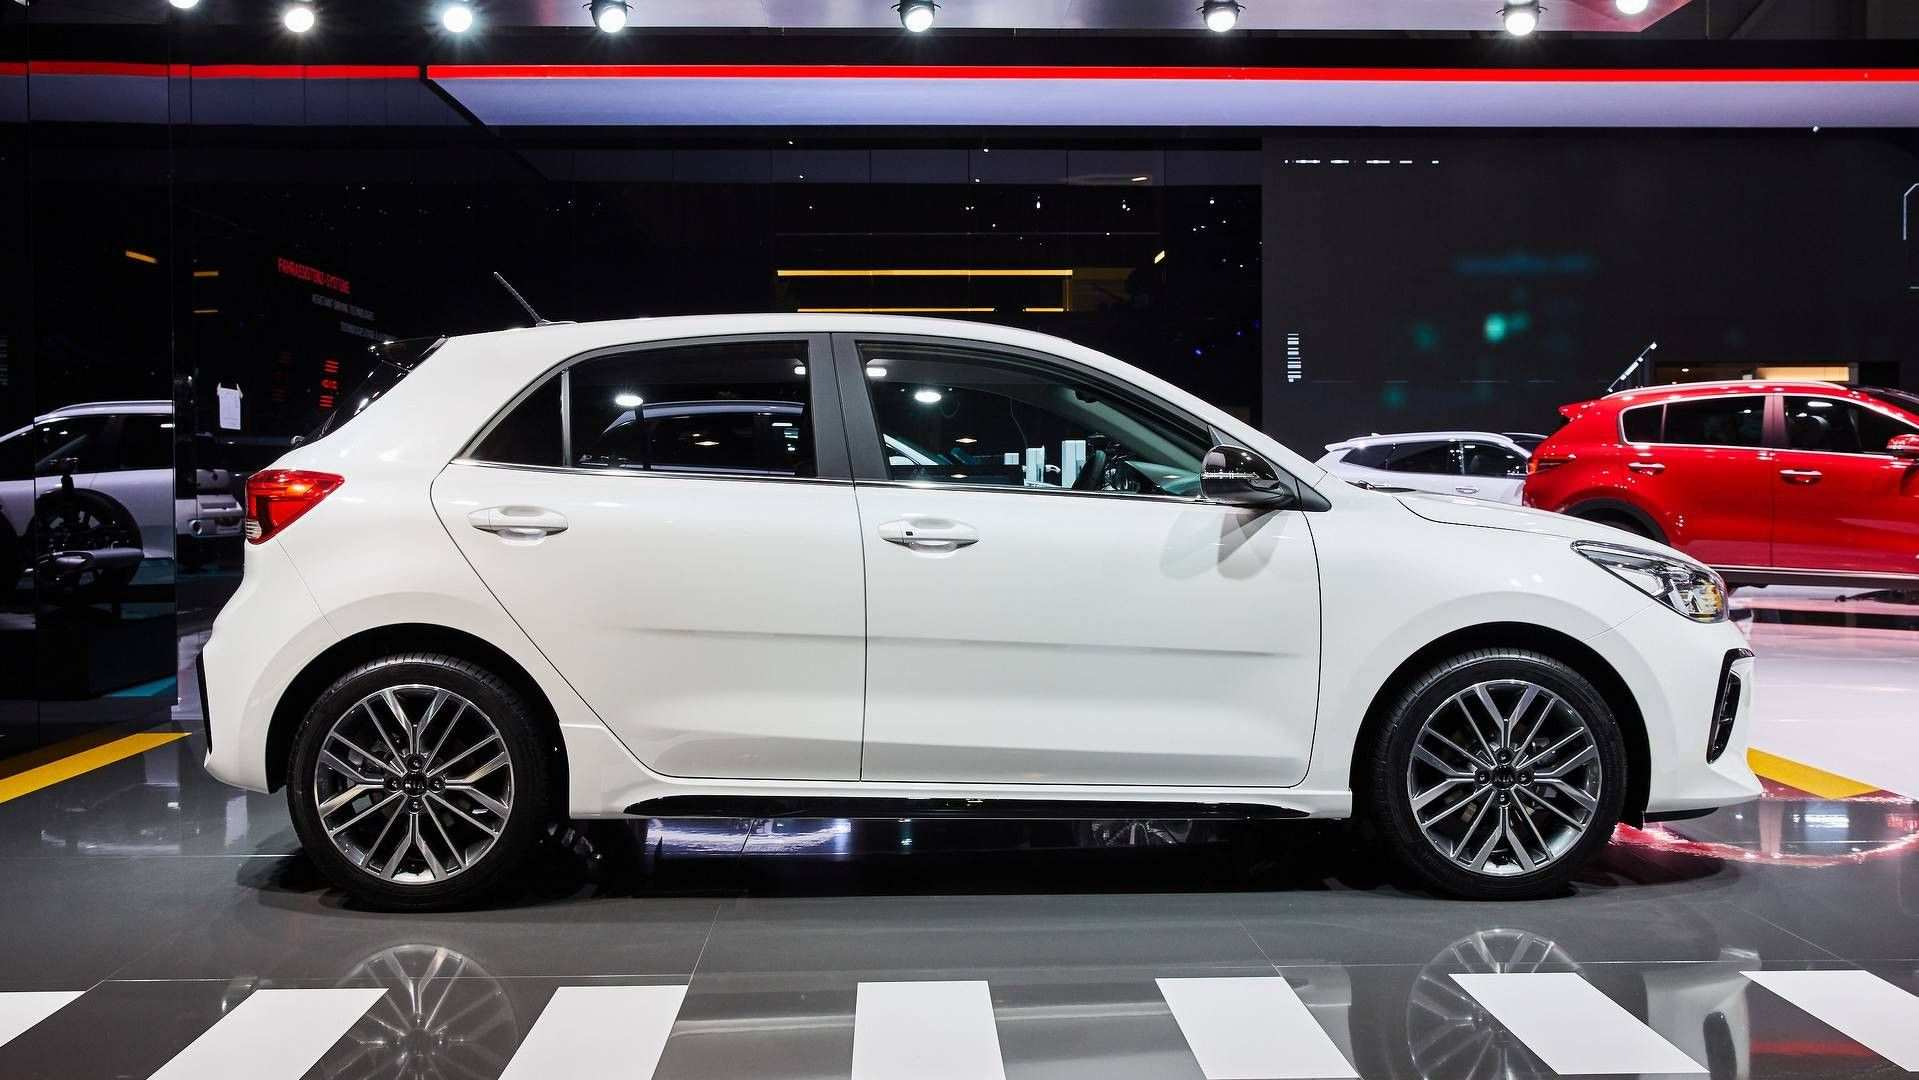 87 Great Kia Rio 2019 Review Exterior and Interior for Kia Rio 2019 Review